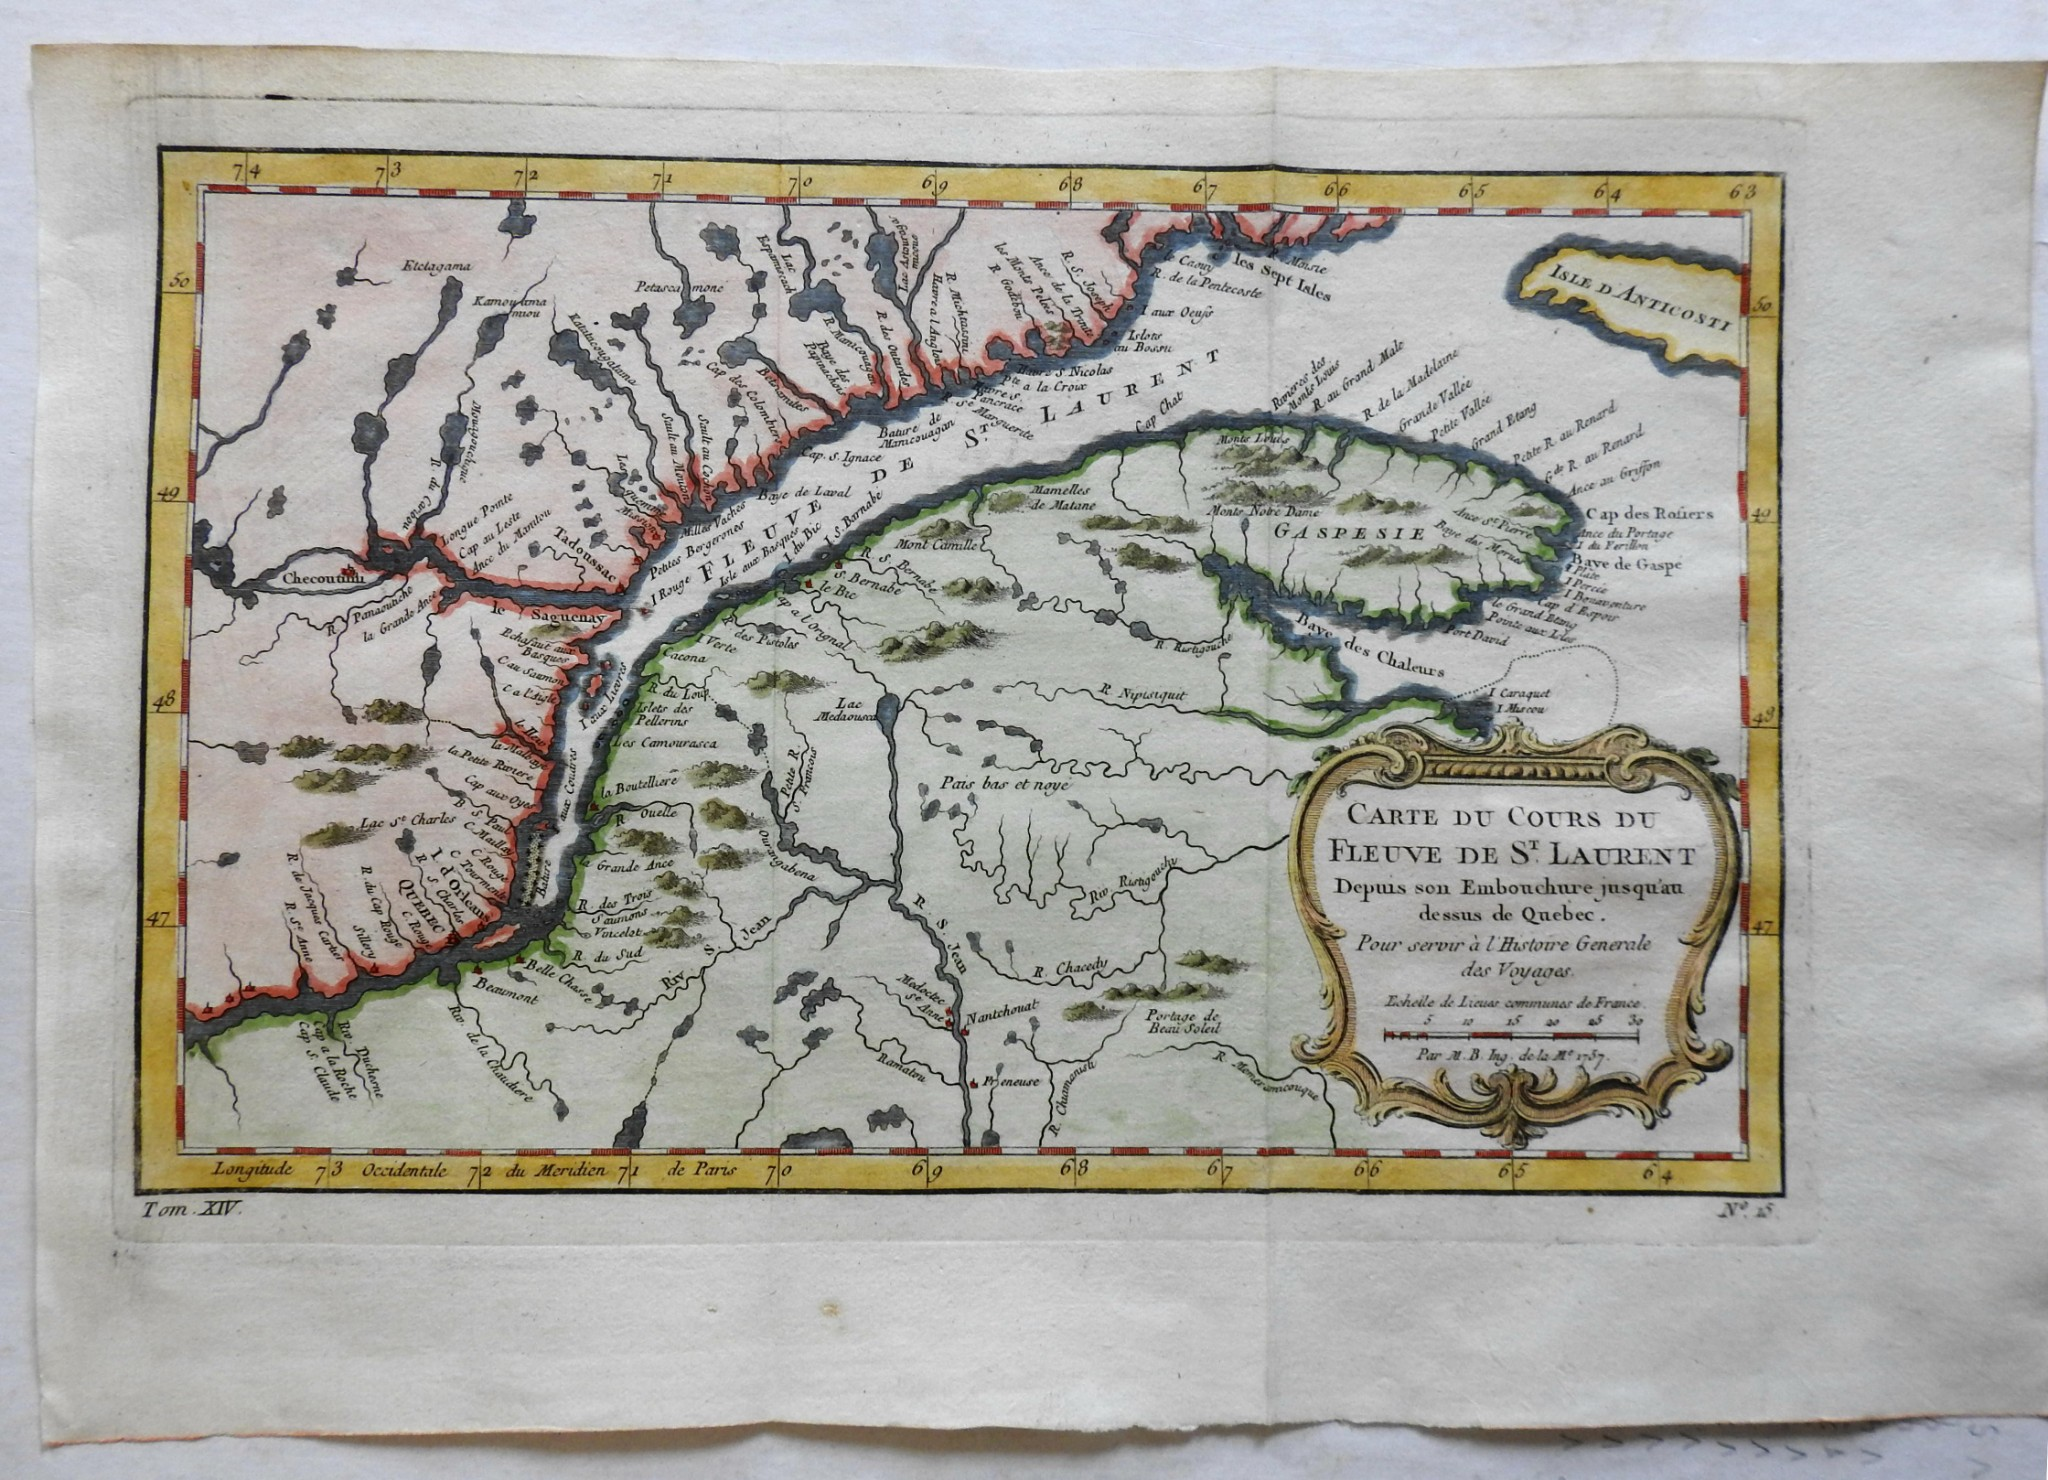 Map Of Maine And New Brunswick Canada St. Lawrence Seaway Canada Quebec New Brunswick Maine 1757 Bellin